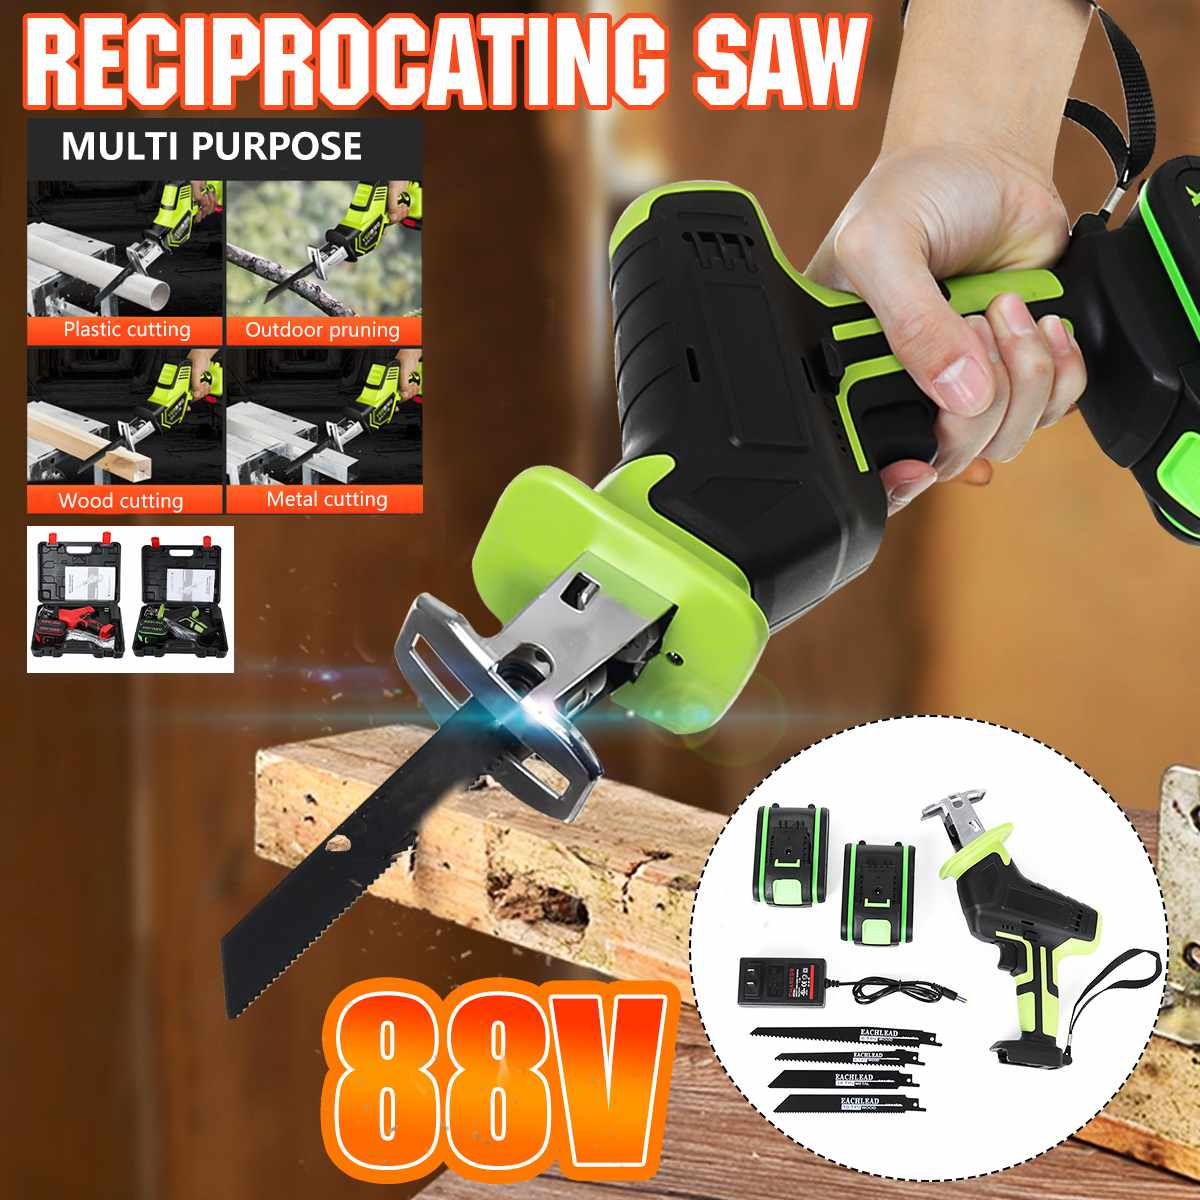 Doersupp 88V Cordless Reciprocating Saw +4 Saw blades Metal Cutting Wood Tool Portable Electric Saw Woodworking Cutters 2Battery